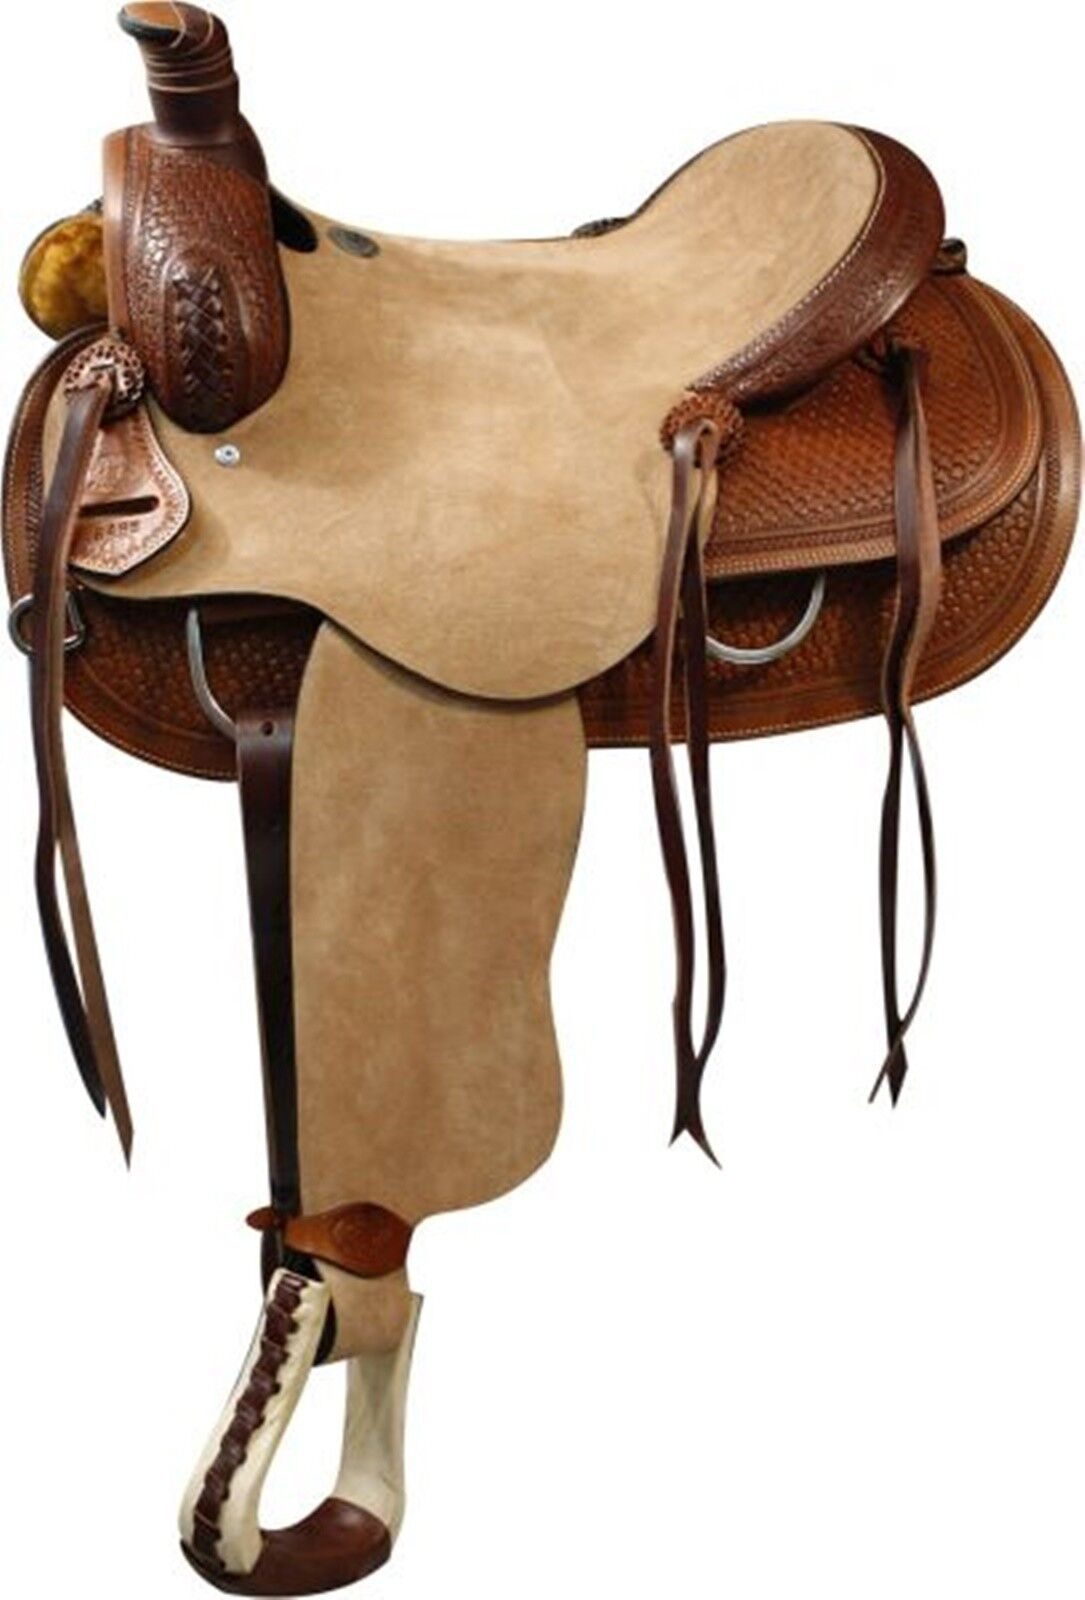 16 doppio T Roper Style Saddle Rough Out Leather Hard Seat.Basket Weave strumentoing